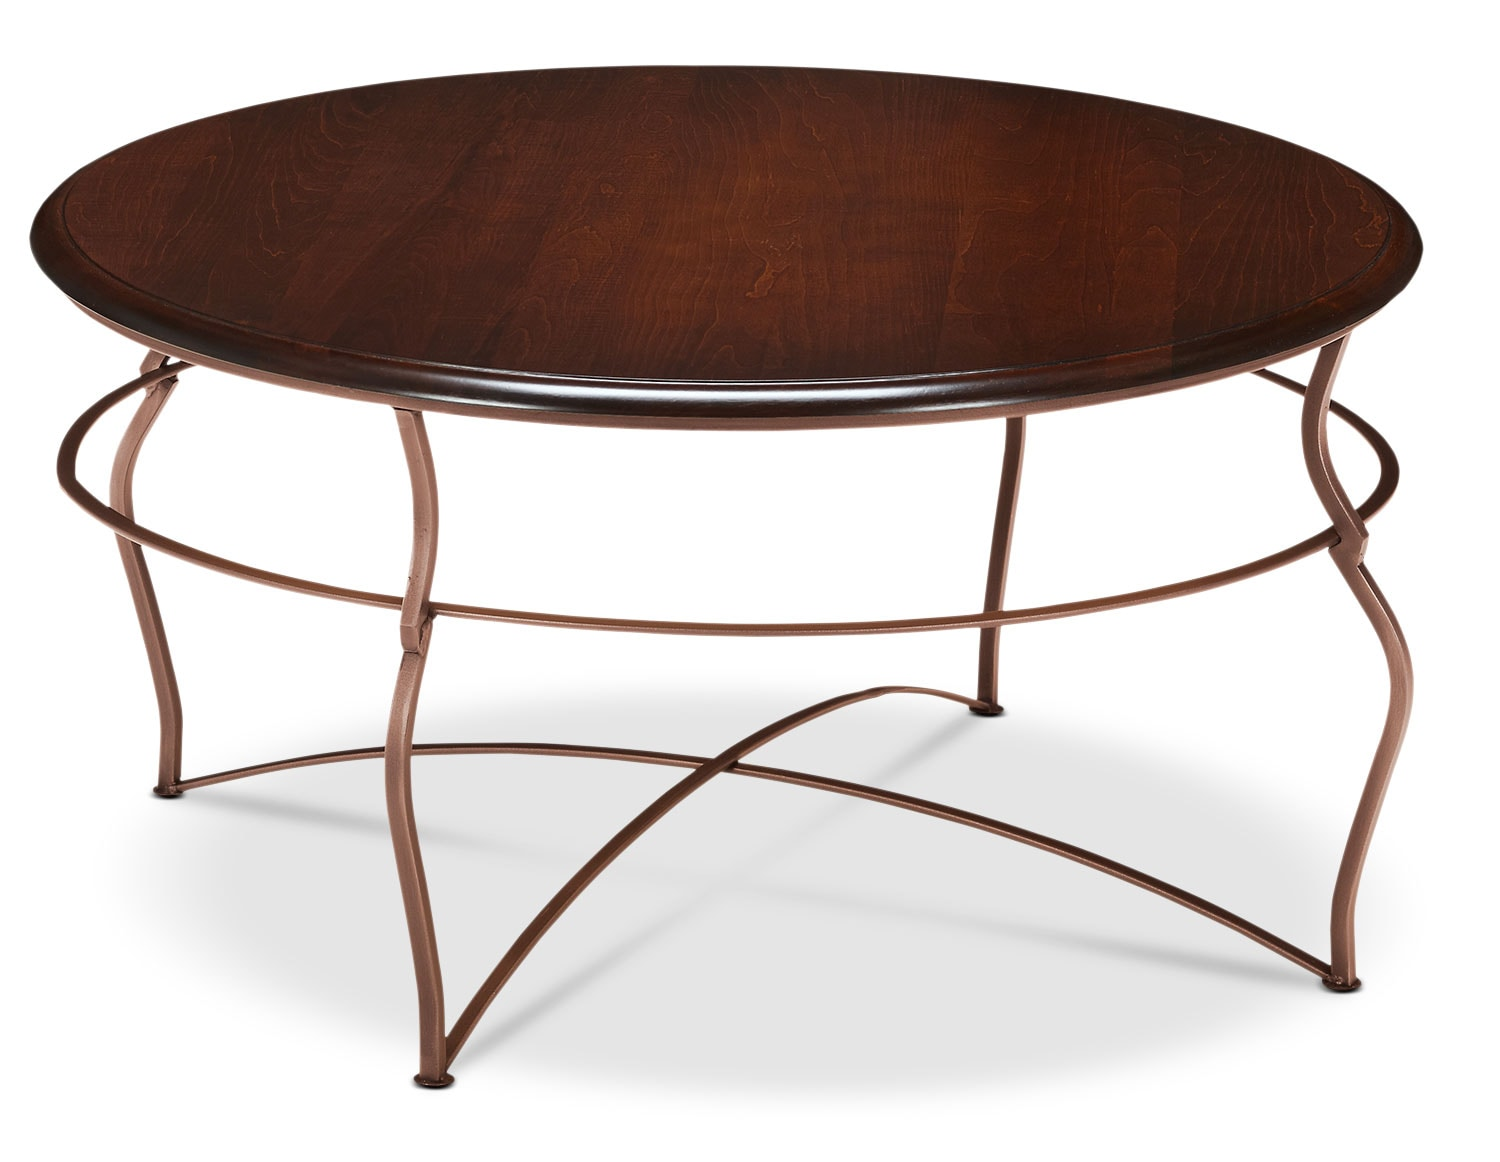 Accent and Occasional Furniture - Online Only - Adele Coffee Table - Brown Cherry with Copper Base